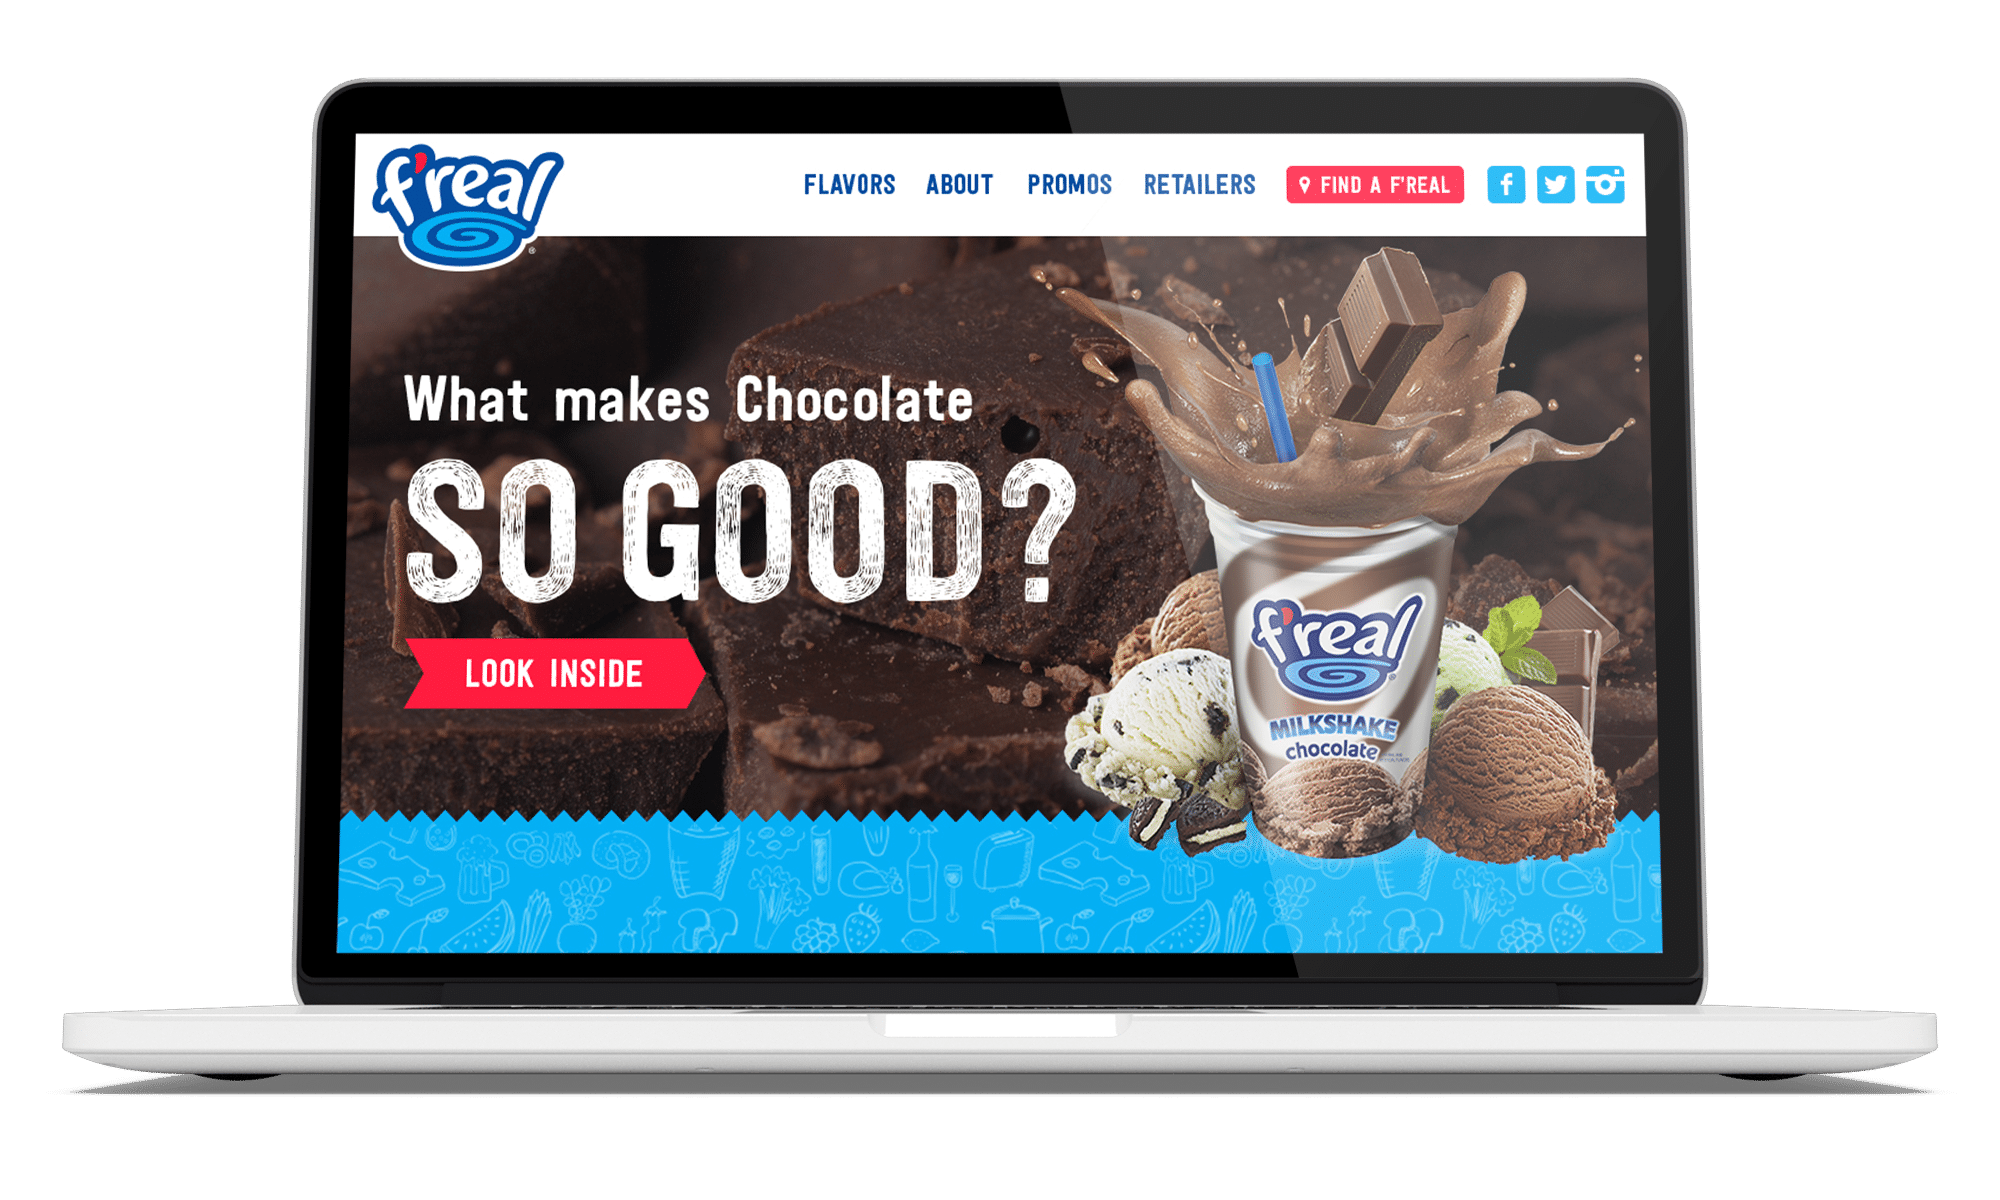 f'real Foods - Case Study